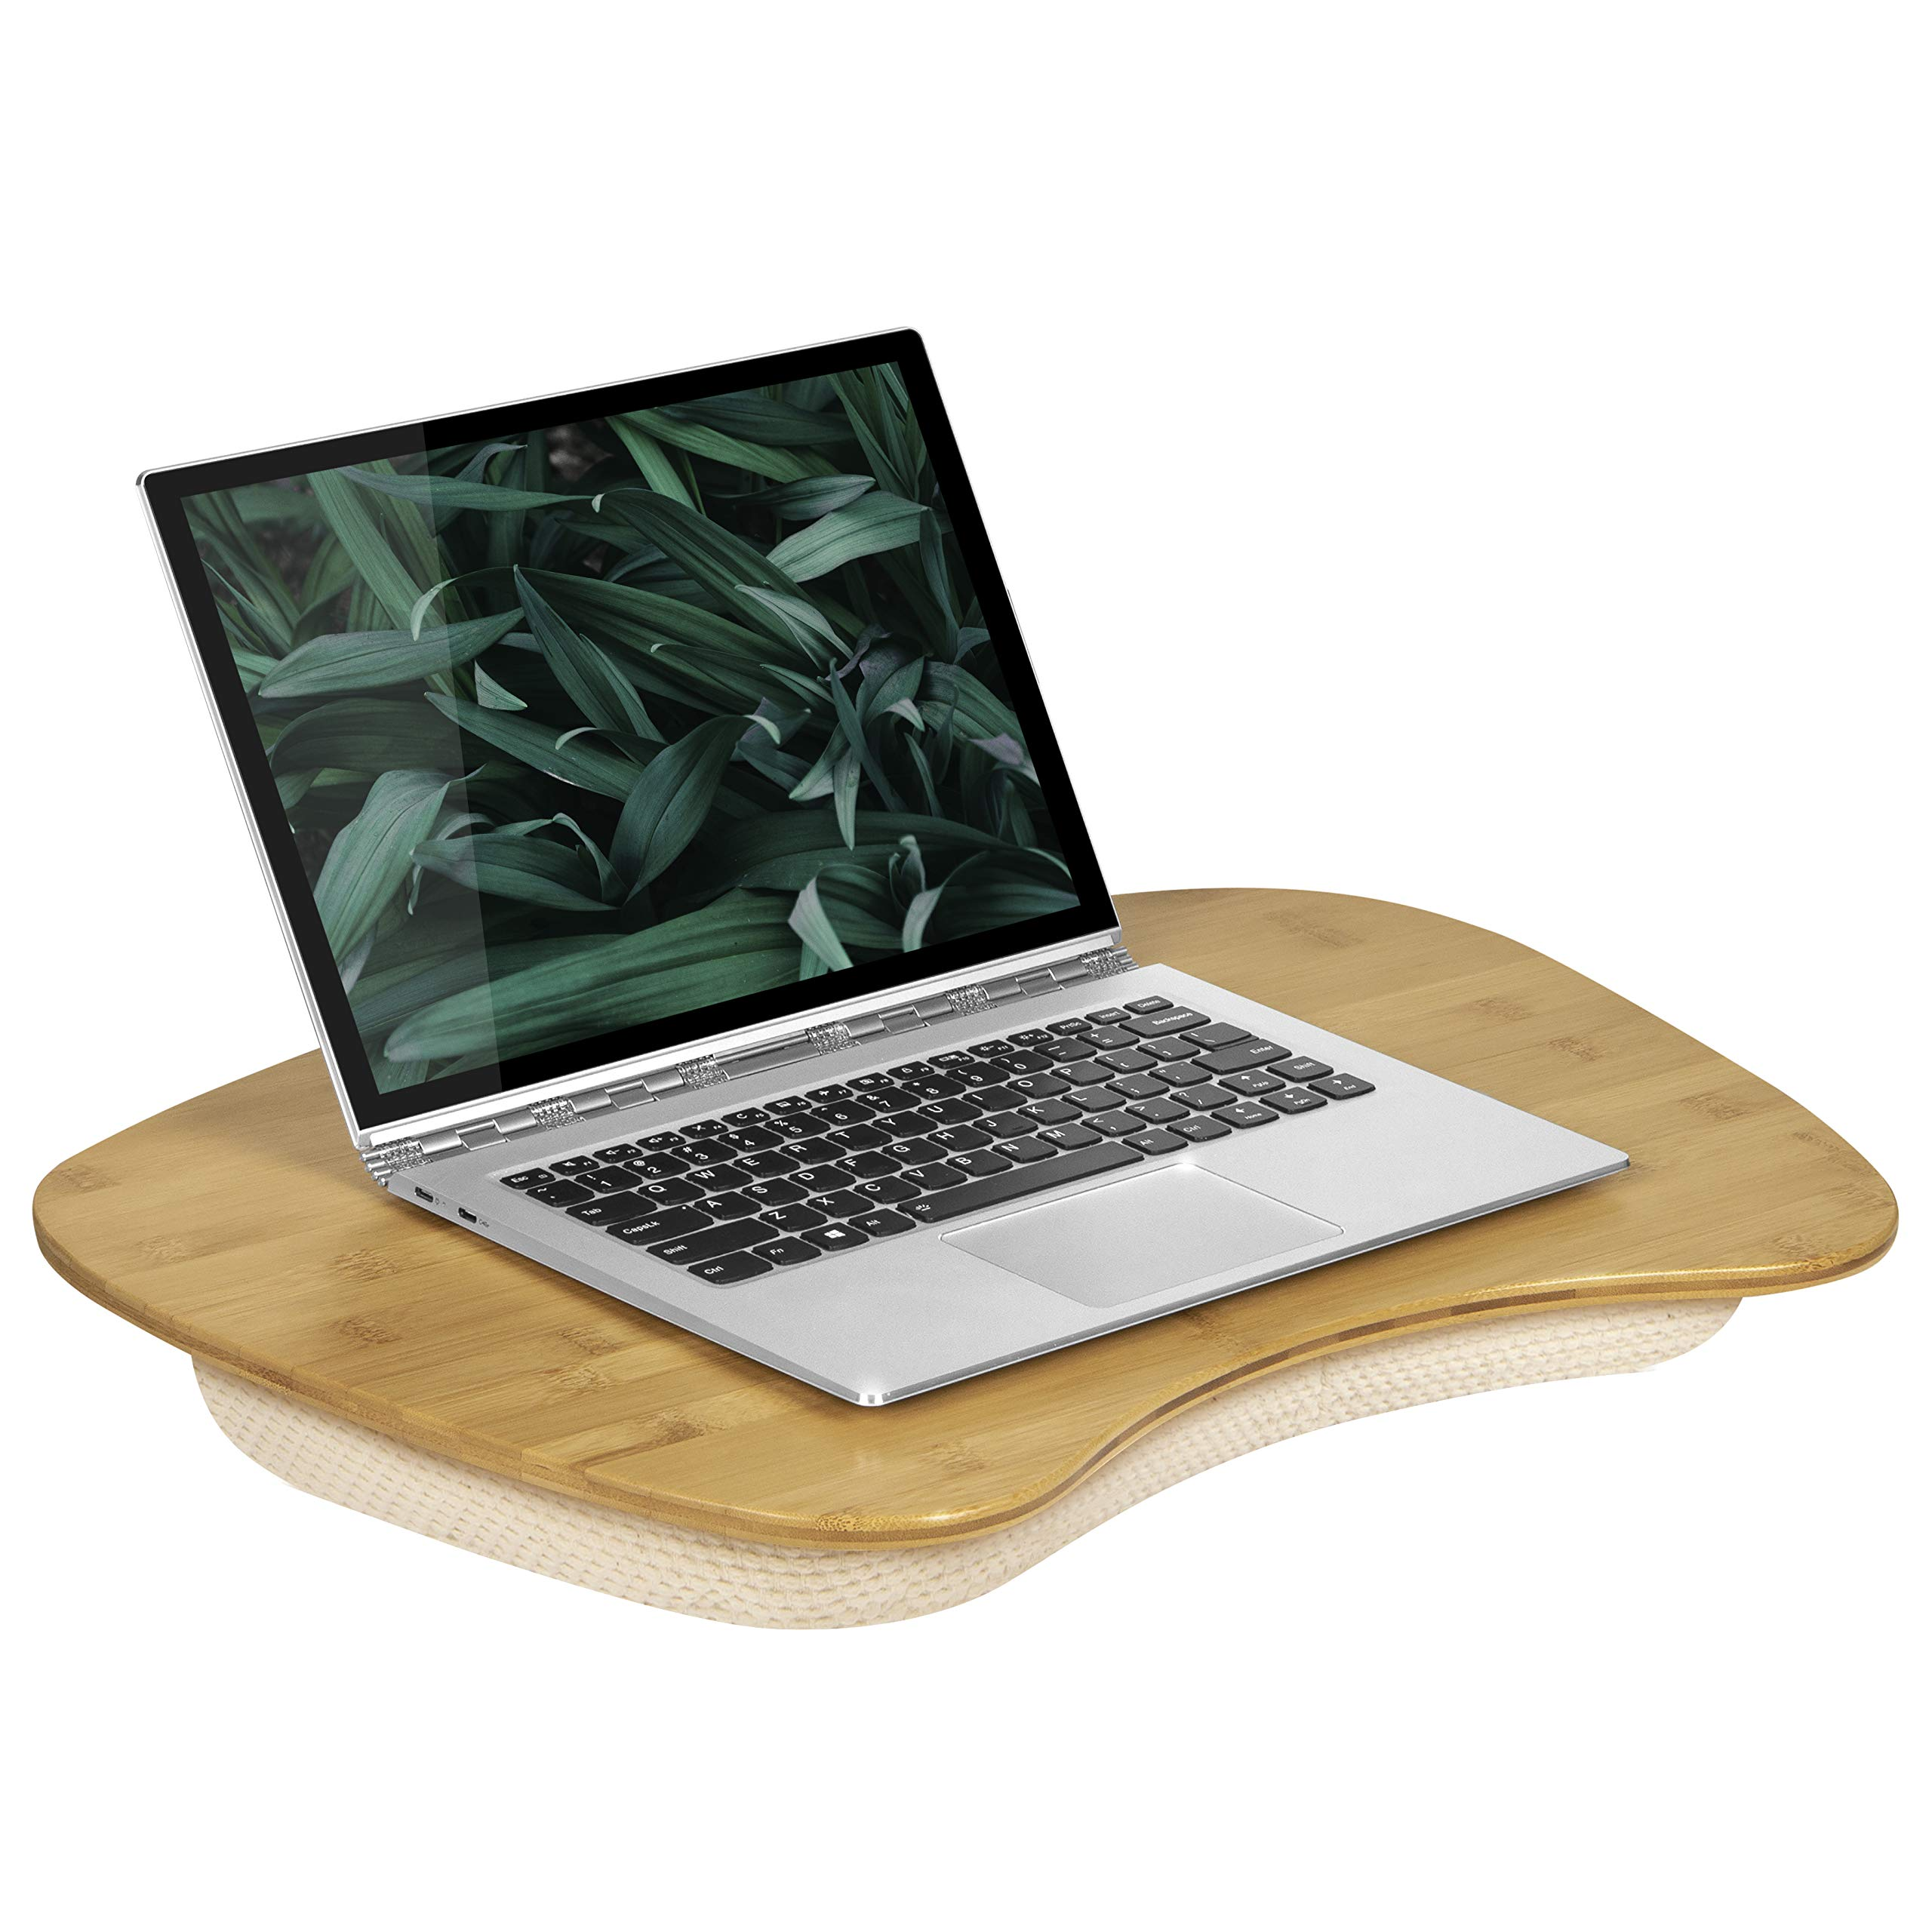 LapGear Bamboo Lap Desk - Fits Up to 17.3 Inch Laptops - Style No. 91697